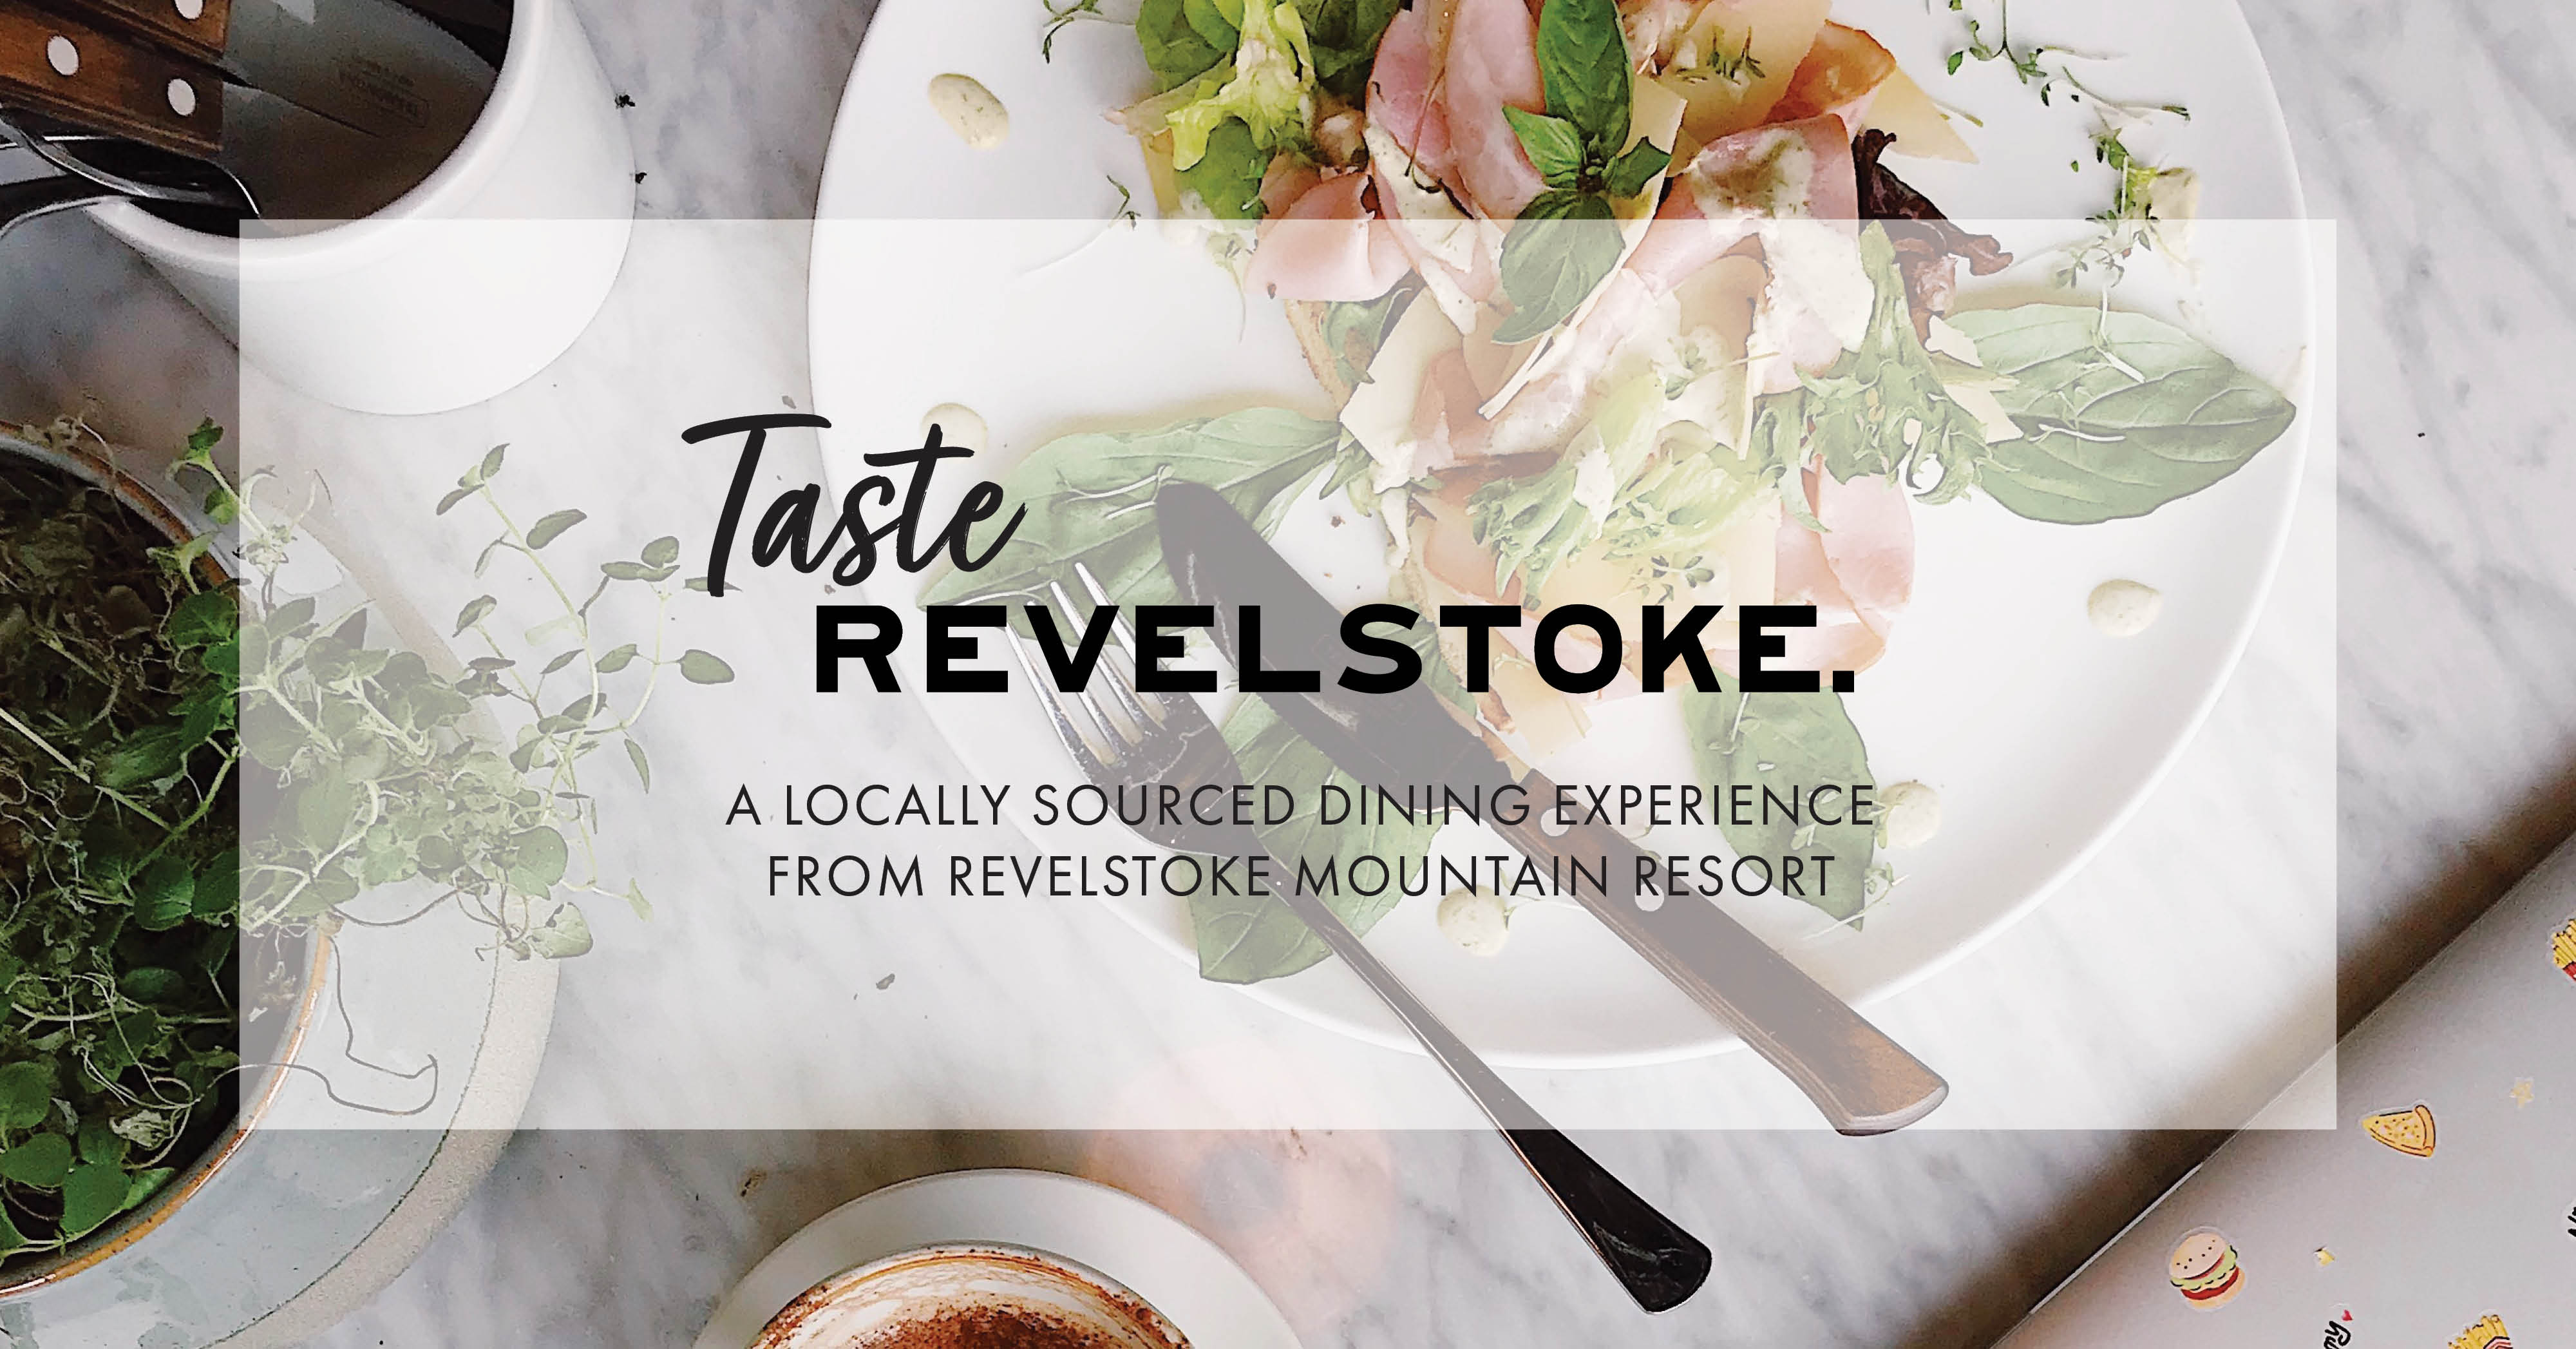 Taste Revelstoke - A Locally Sourced Dining Experience @ Mackenzie Common Tavern |  |  |